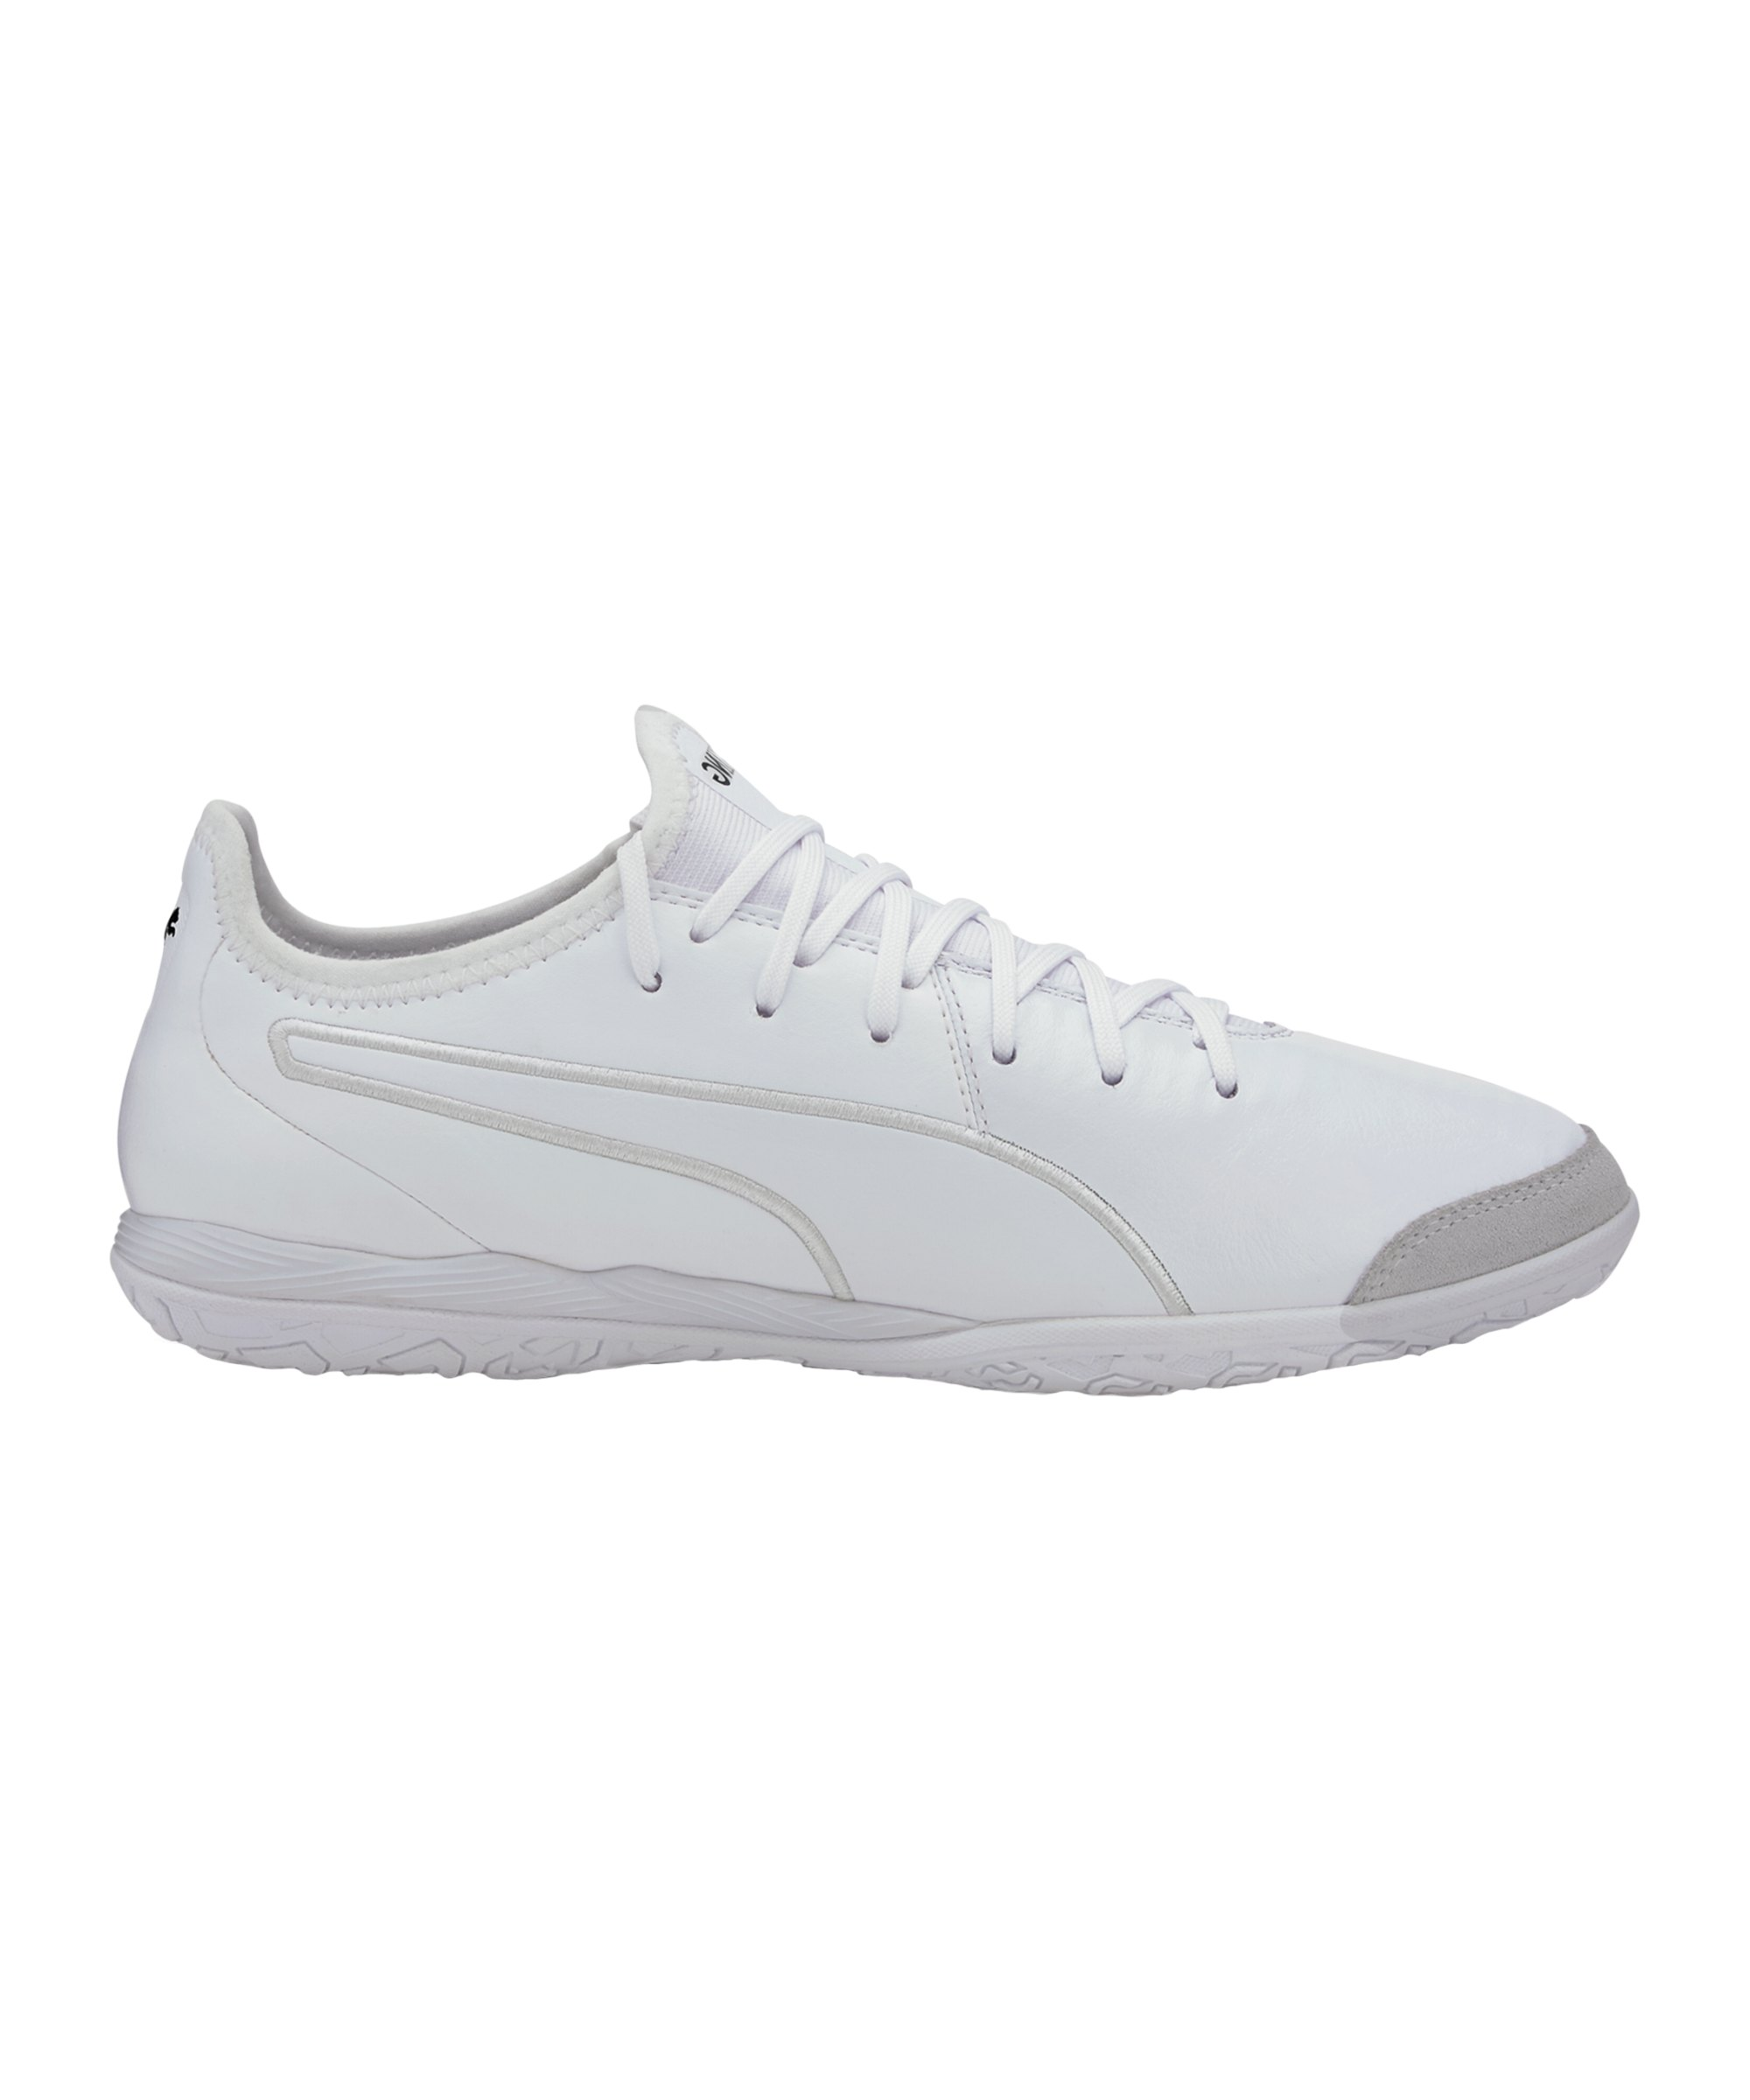 PUMA KING Pro IT Halle Weiss F02 - weiss